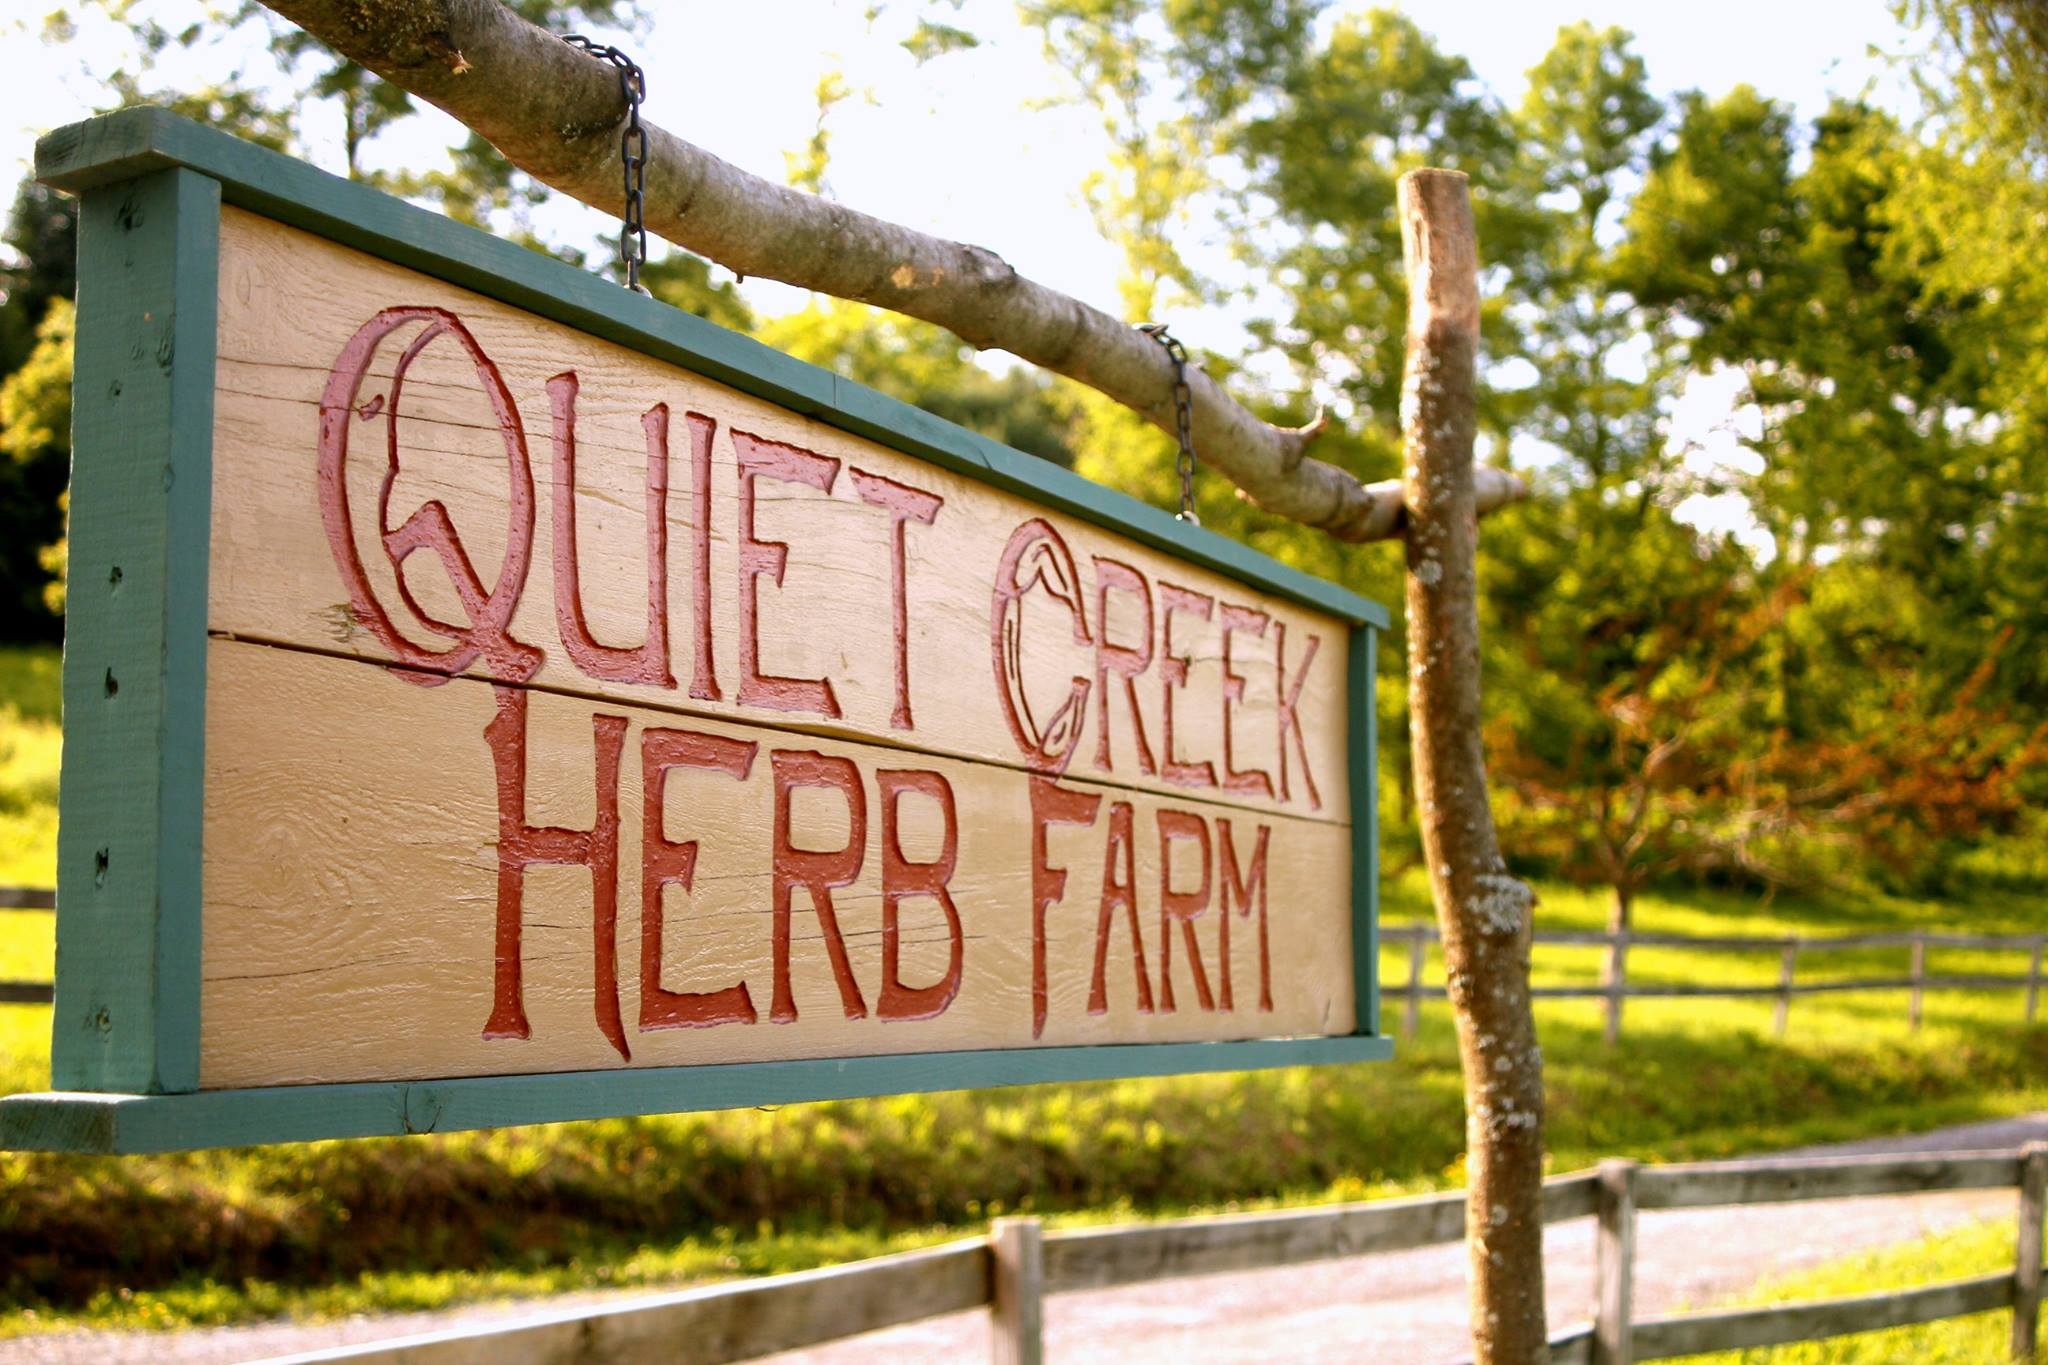 Quiet Creek Herb Farm School Of Country Living Visit Pa Great Outdoors